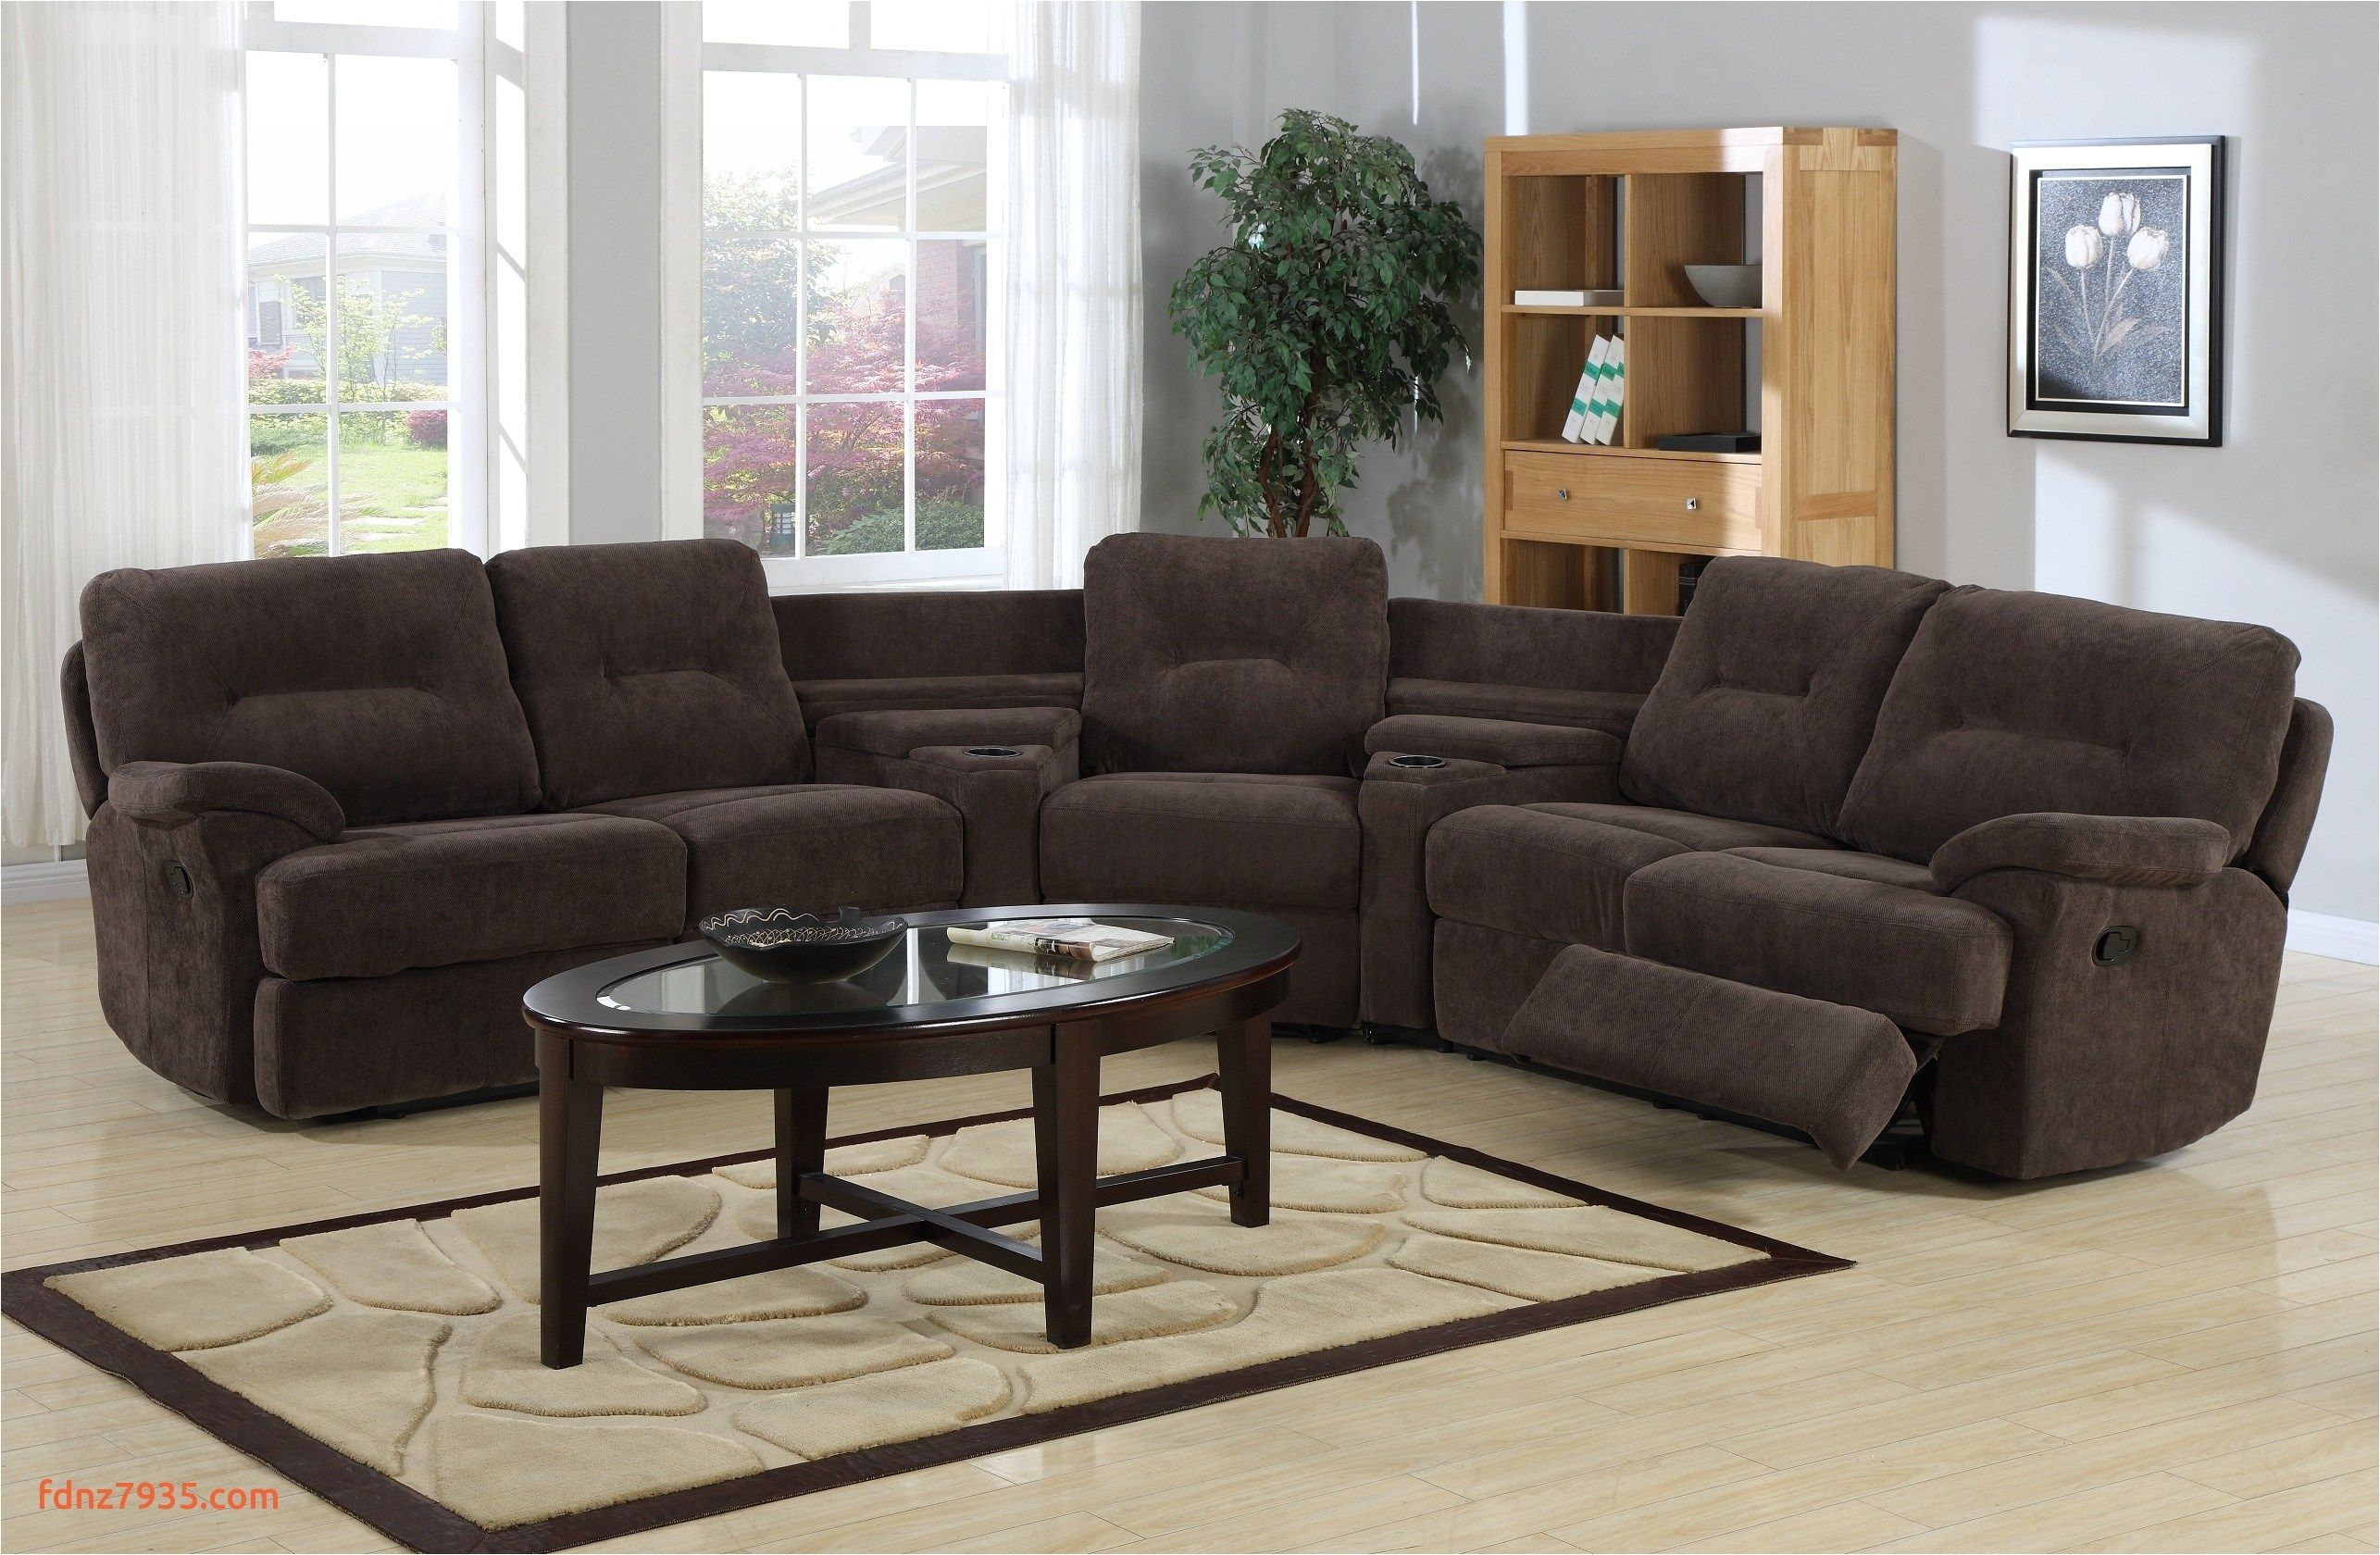 Add Flexibility In Your Living Room With An L Shaped Sectional Sofa With Recliner Darbylanefur In 2020 Modern Sofa Sectional Reclining Sectional Sectional Sofa Couch